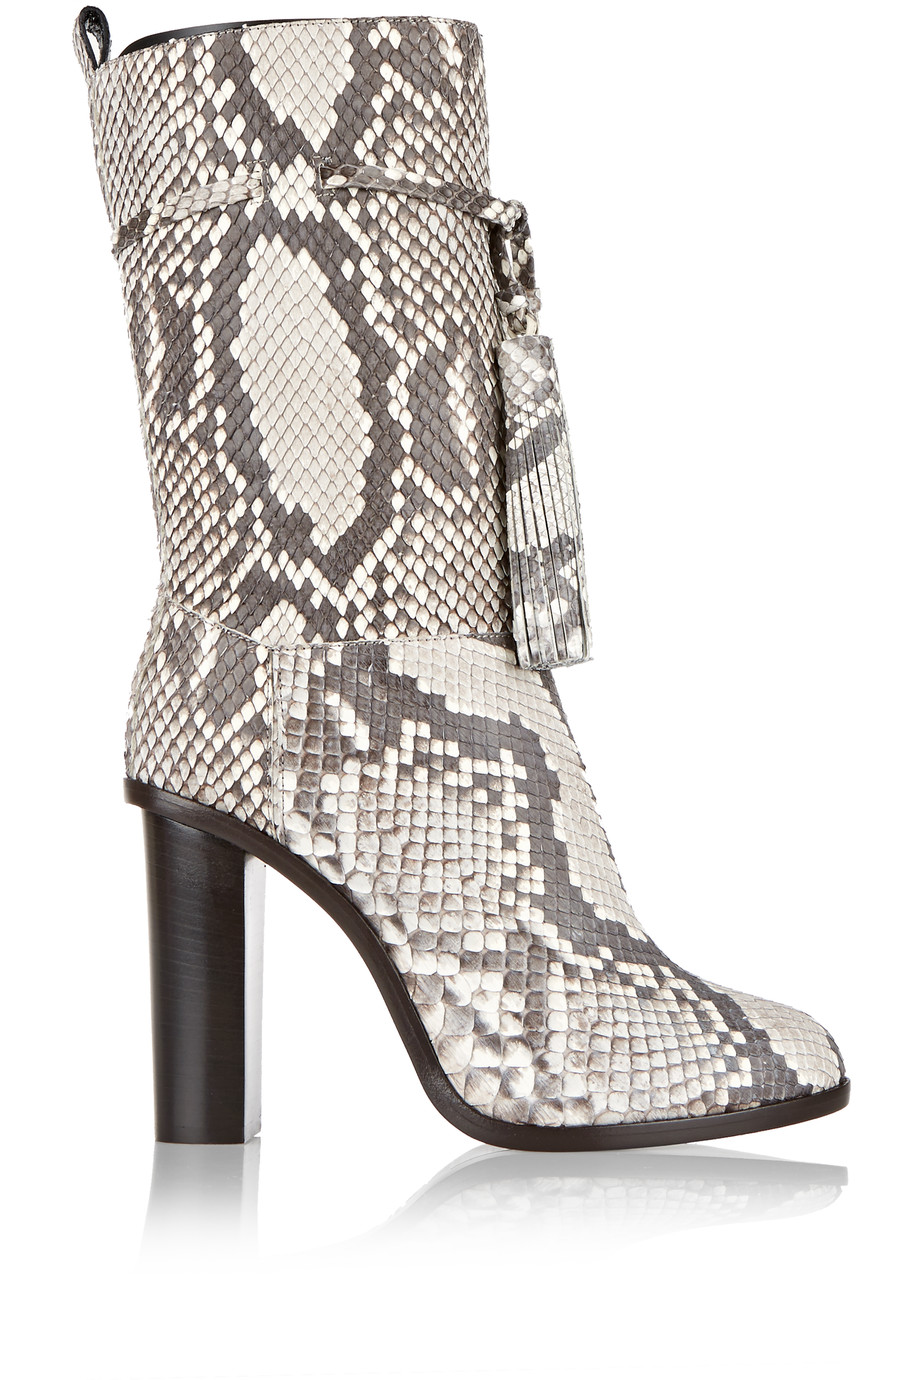 LANVIN Tasseled Python Boots at THE OUTNET.COM